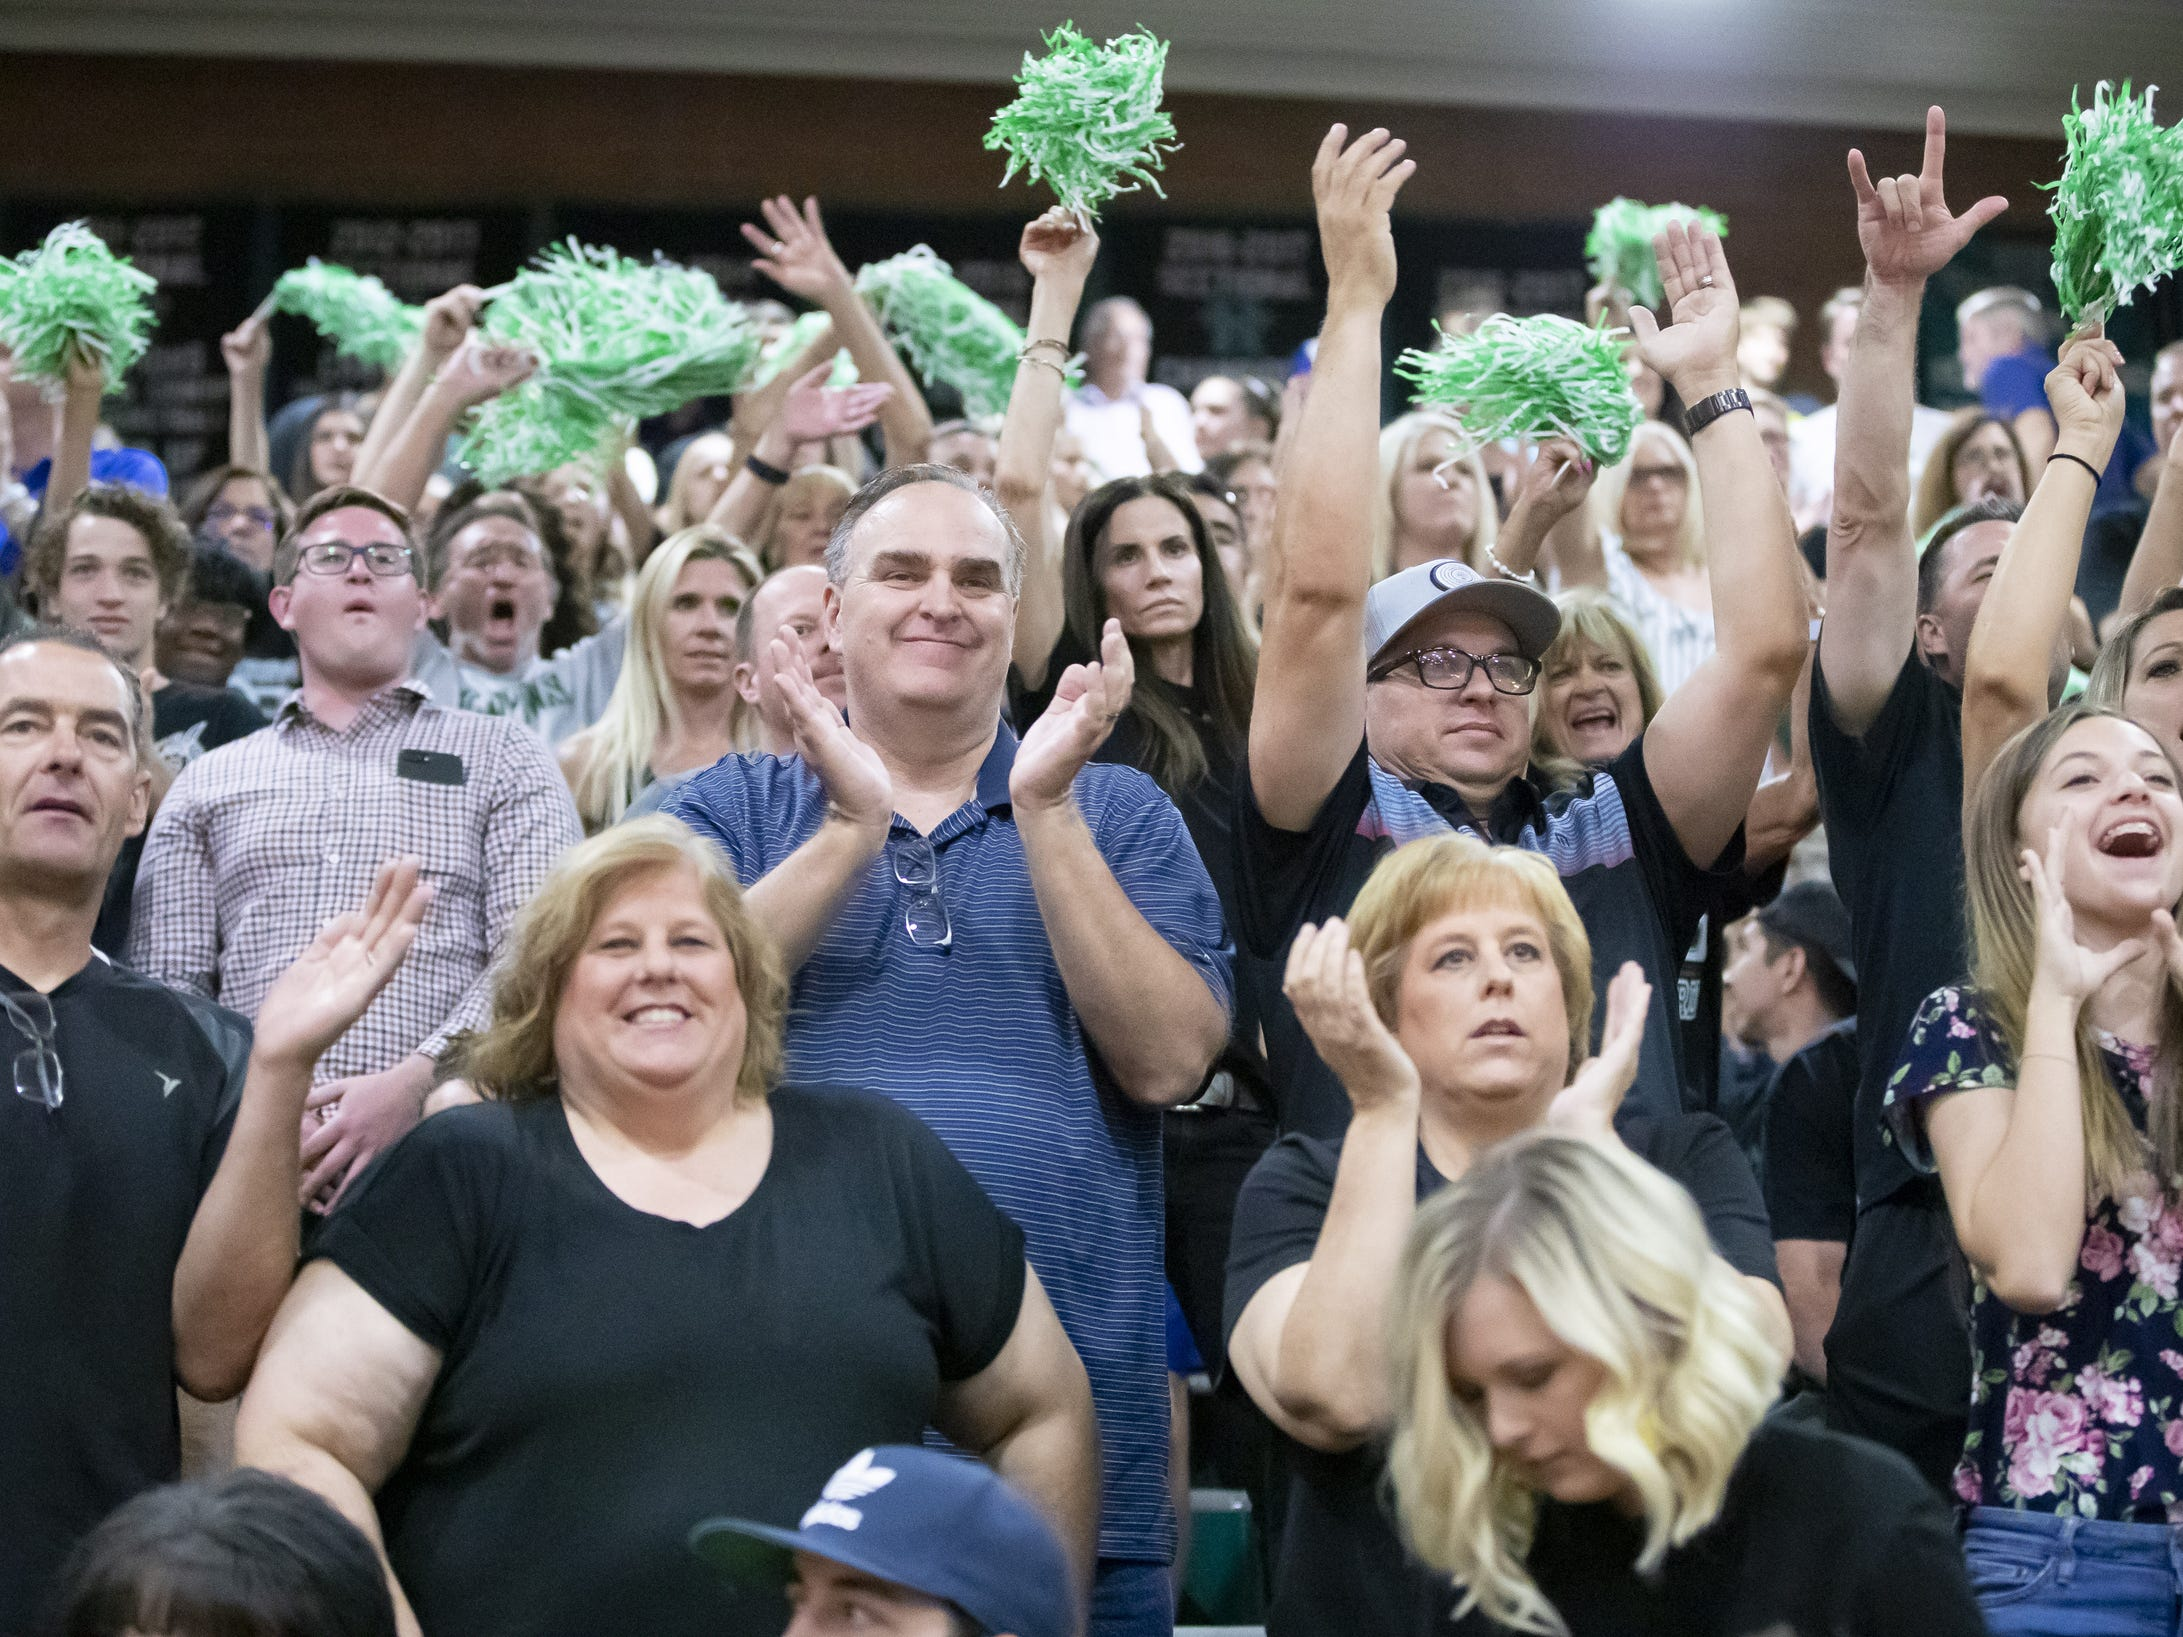 Campo Verde Coyotes fans cheer during the 5A Boys Volleyball State Championships against the Tucson Mountain View Mountain Lions at Higley High School on Saturday, May 11, 2019 in Gilbert, Arizona.